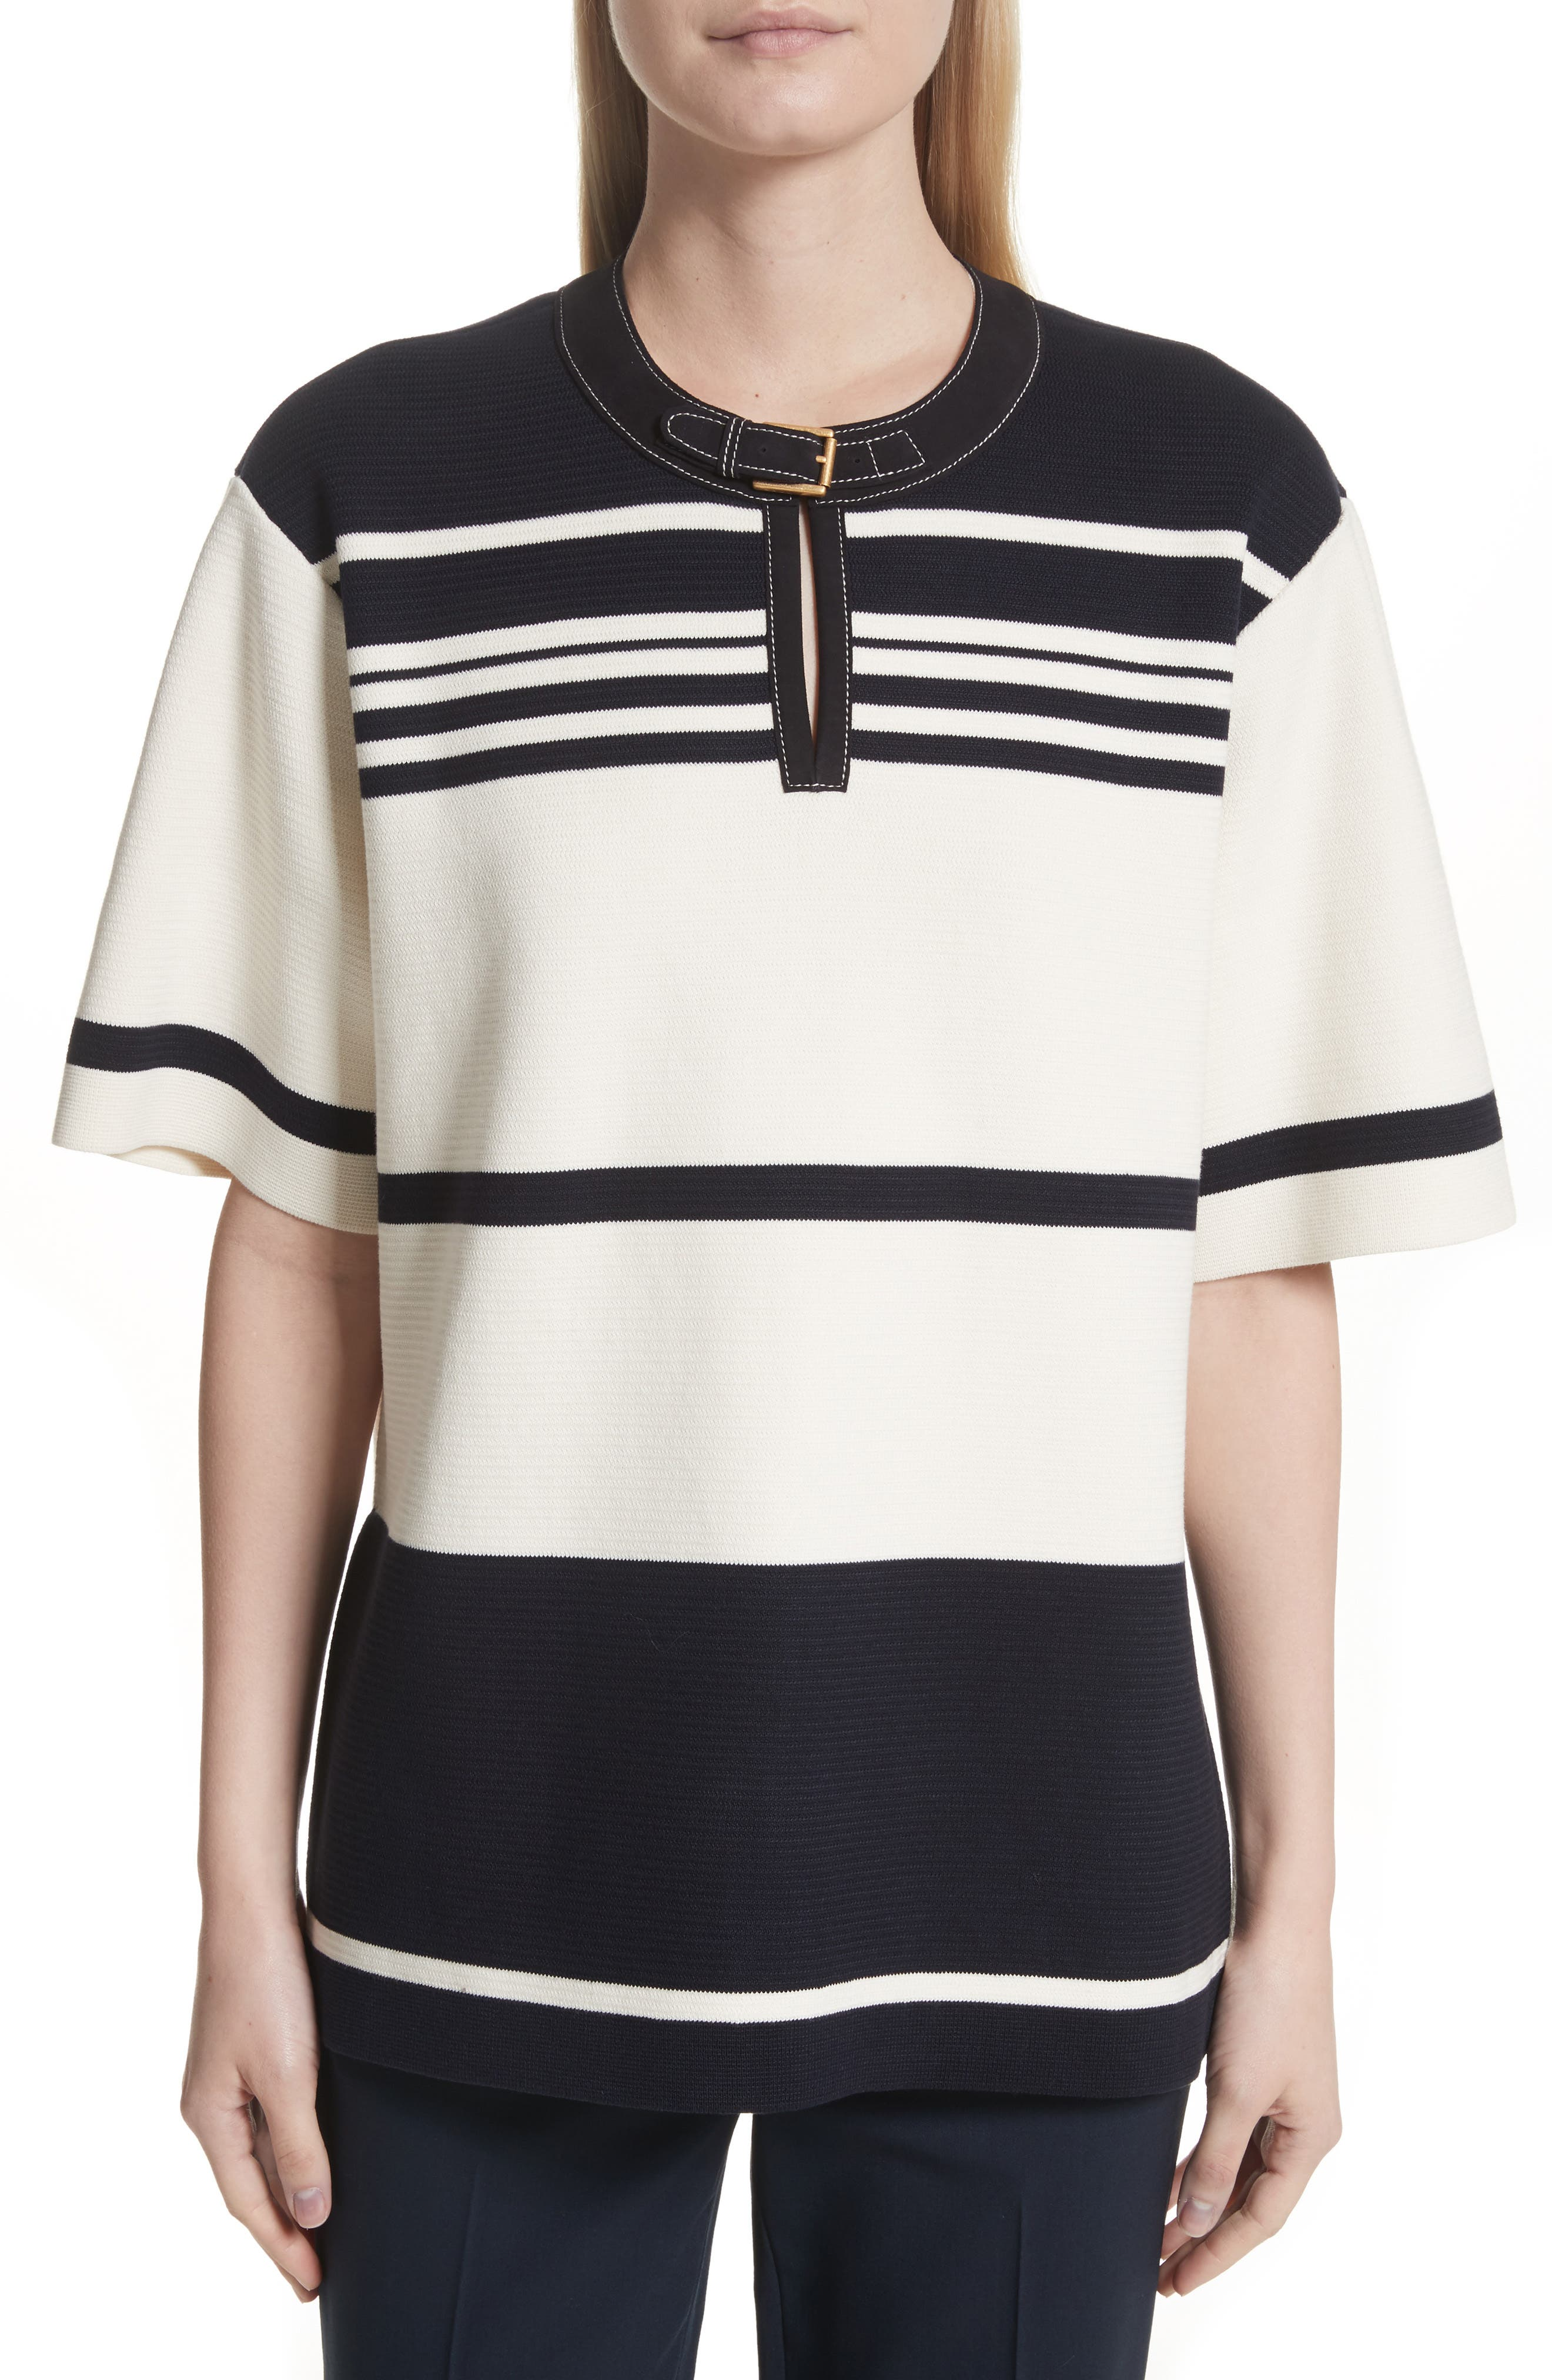 Tory Burch Krista Suede Trim Stripe Sweater